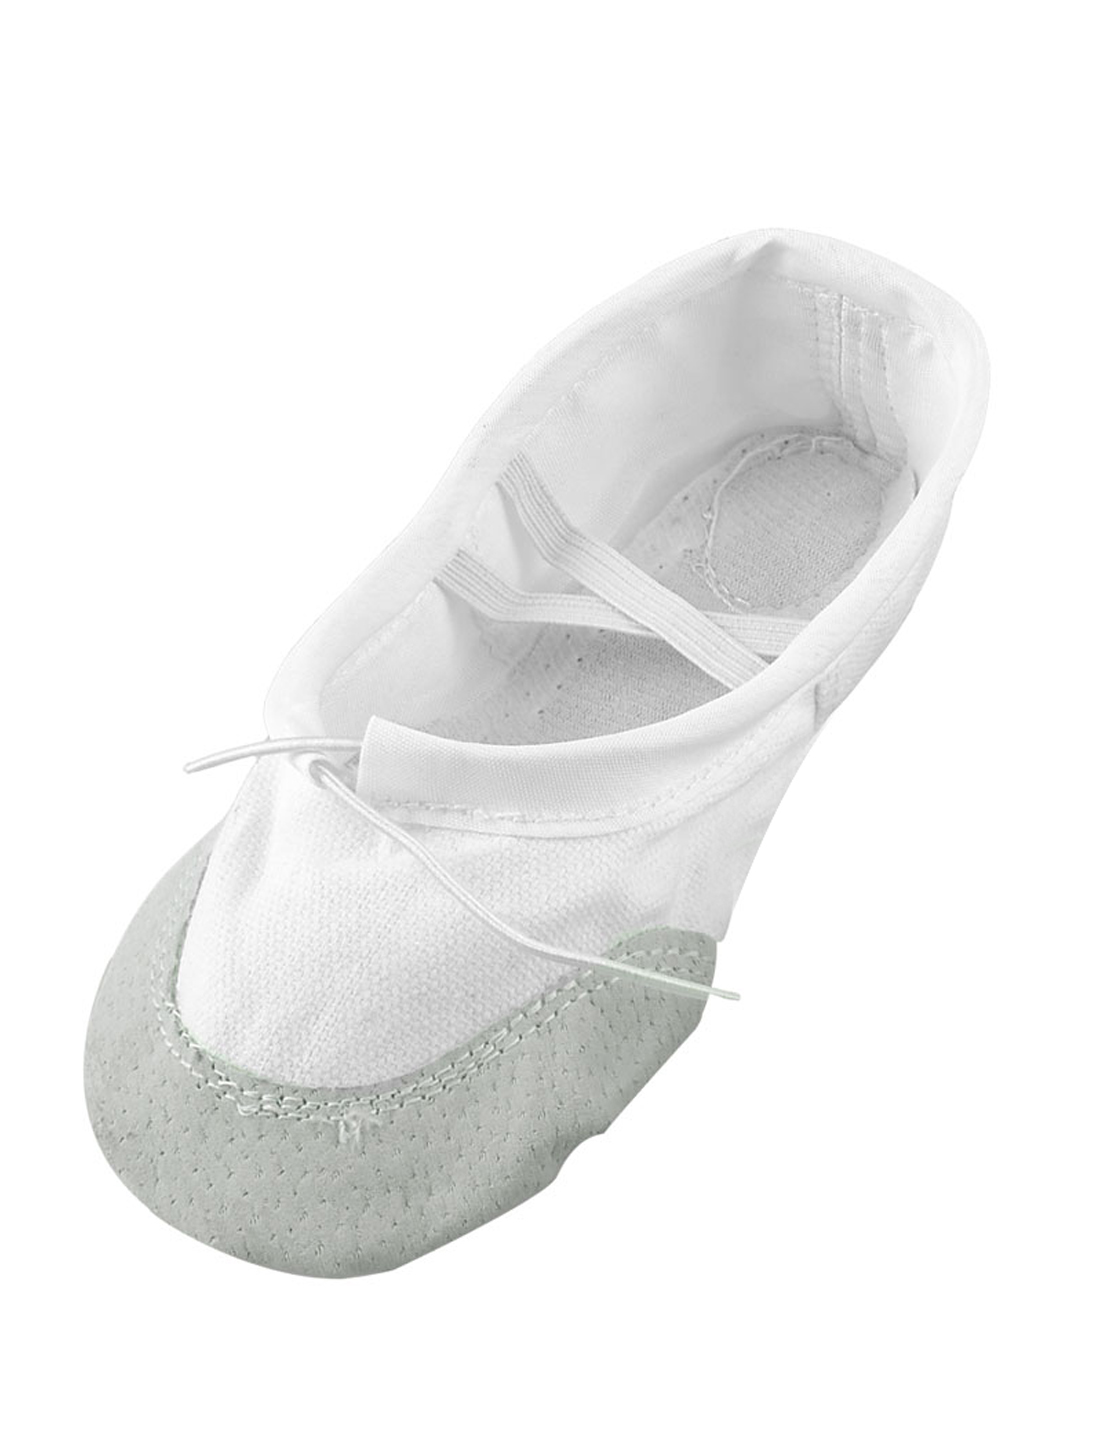 White Soft Canvas Elastic Cross Band Flat Ballet Dancing Shoes US 10.5 for Girl